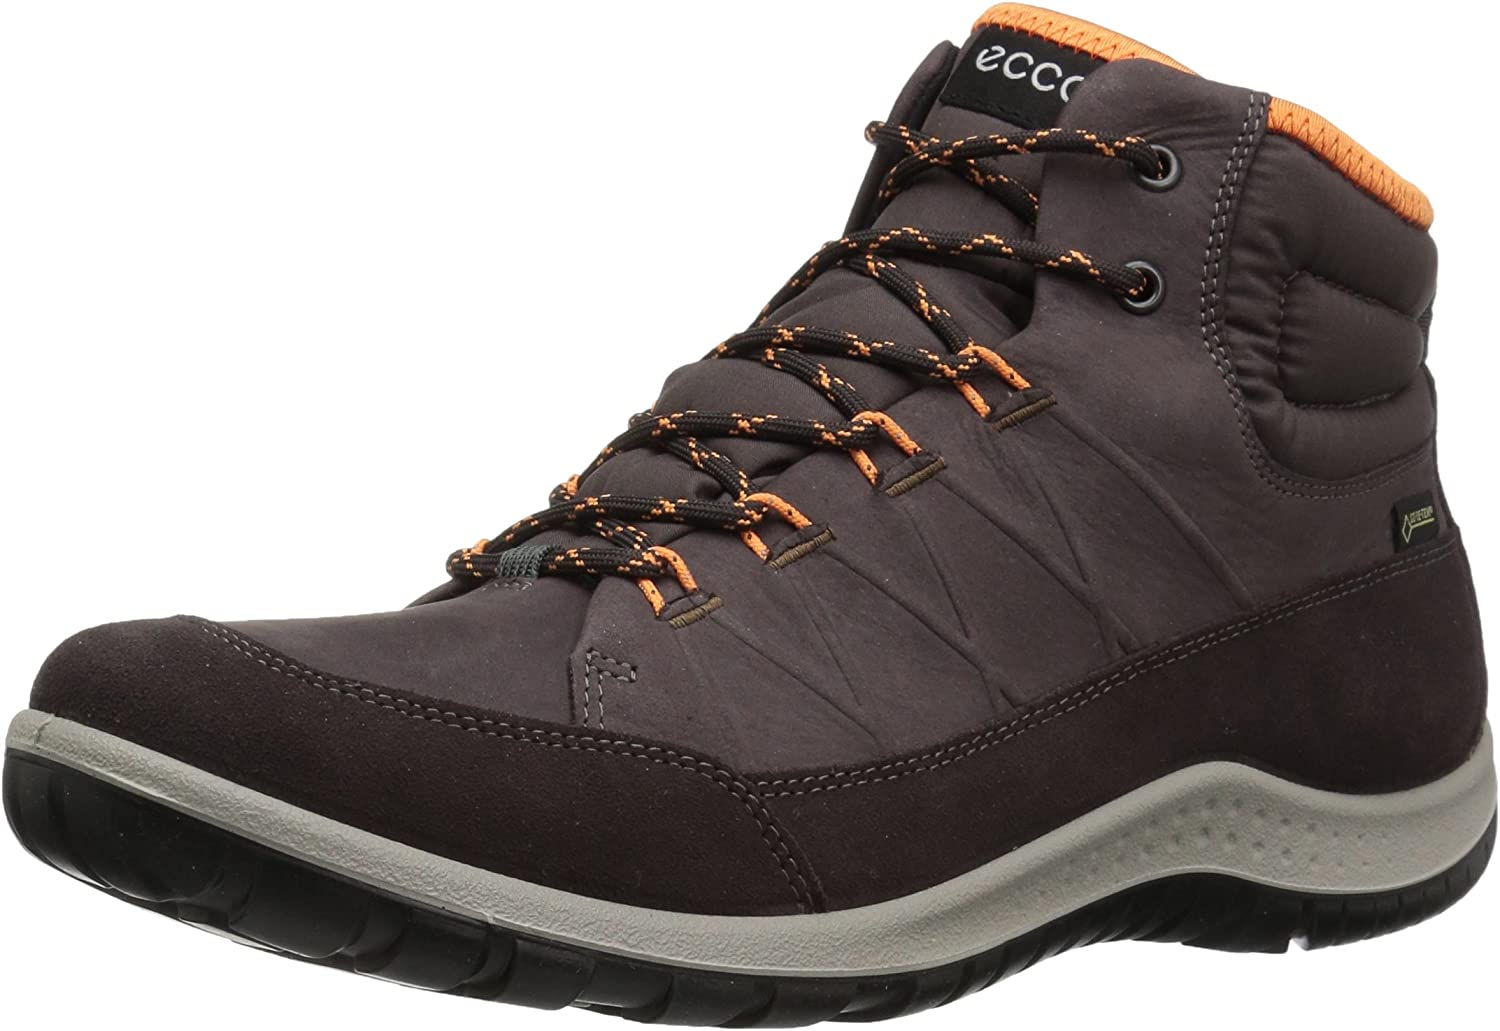 ECCO shoes Women's Aspina GTX High Backpacking Boots